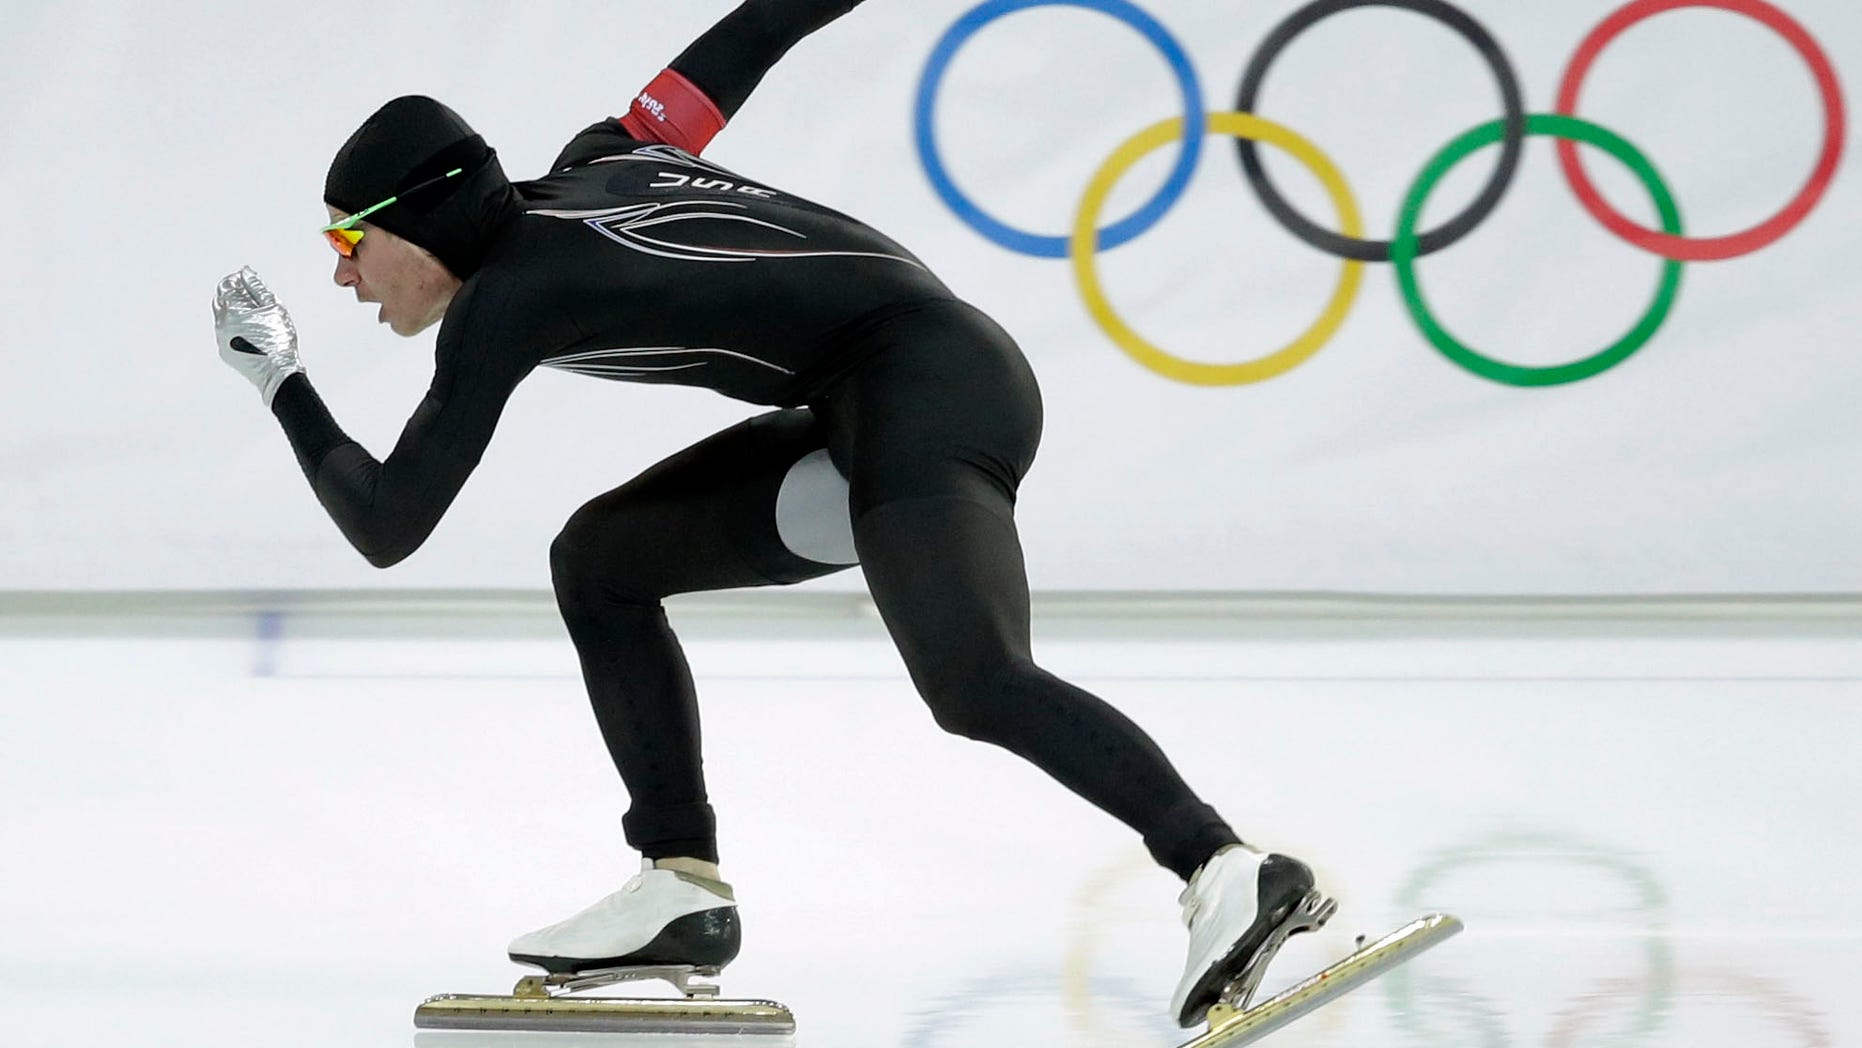 In this Monday, Feb. 10, 2014 file photo, Tucker Fredricks of the United States competes in the first heat of the men's 500-meter speedskating race at Adler Arena in Sochi, Russia, during the 2014 Winter Olympics. After a strong season on the World Cup circuit, the U.S. speedskating team has had a miserable performance the first week of the Sochi Olympics â and much of the speculation has turned to its new high-tech Under Armour skinsuit developed with help from aerospace and defense giant Lockheed Martin. (AP)